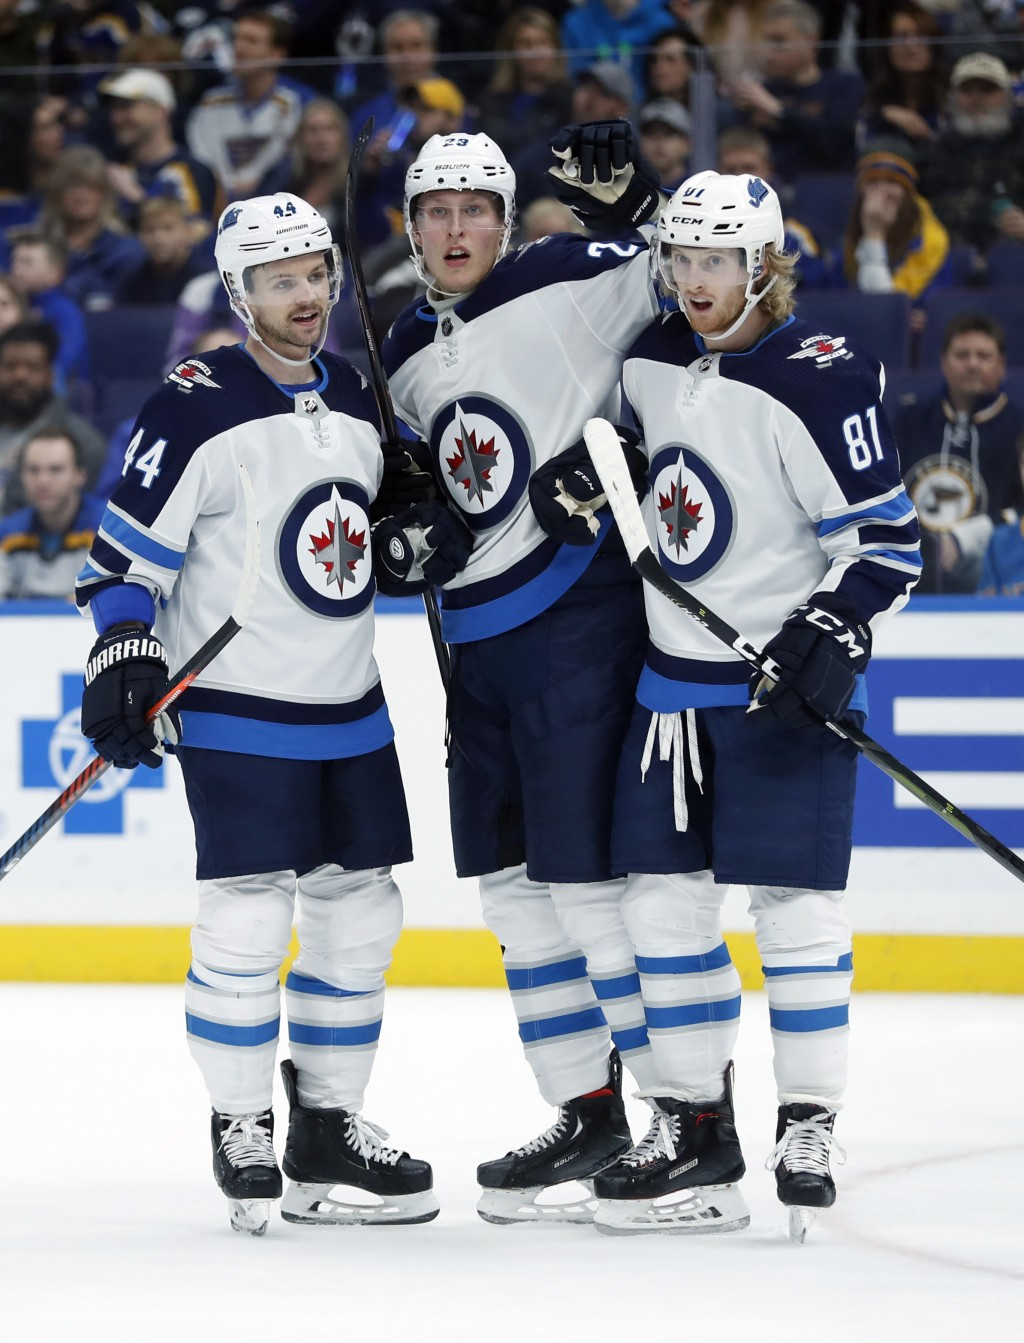 Winnipeg Jets' Patrik Laine, of Finland, is congratulated by Josh Morrissey (44) and Kyle Connor (81) after scoring during the first period of an NHL ...